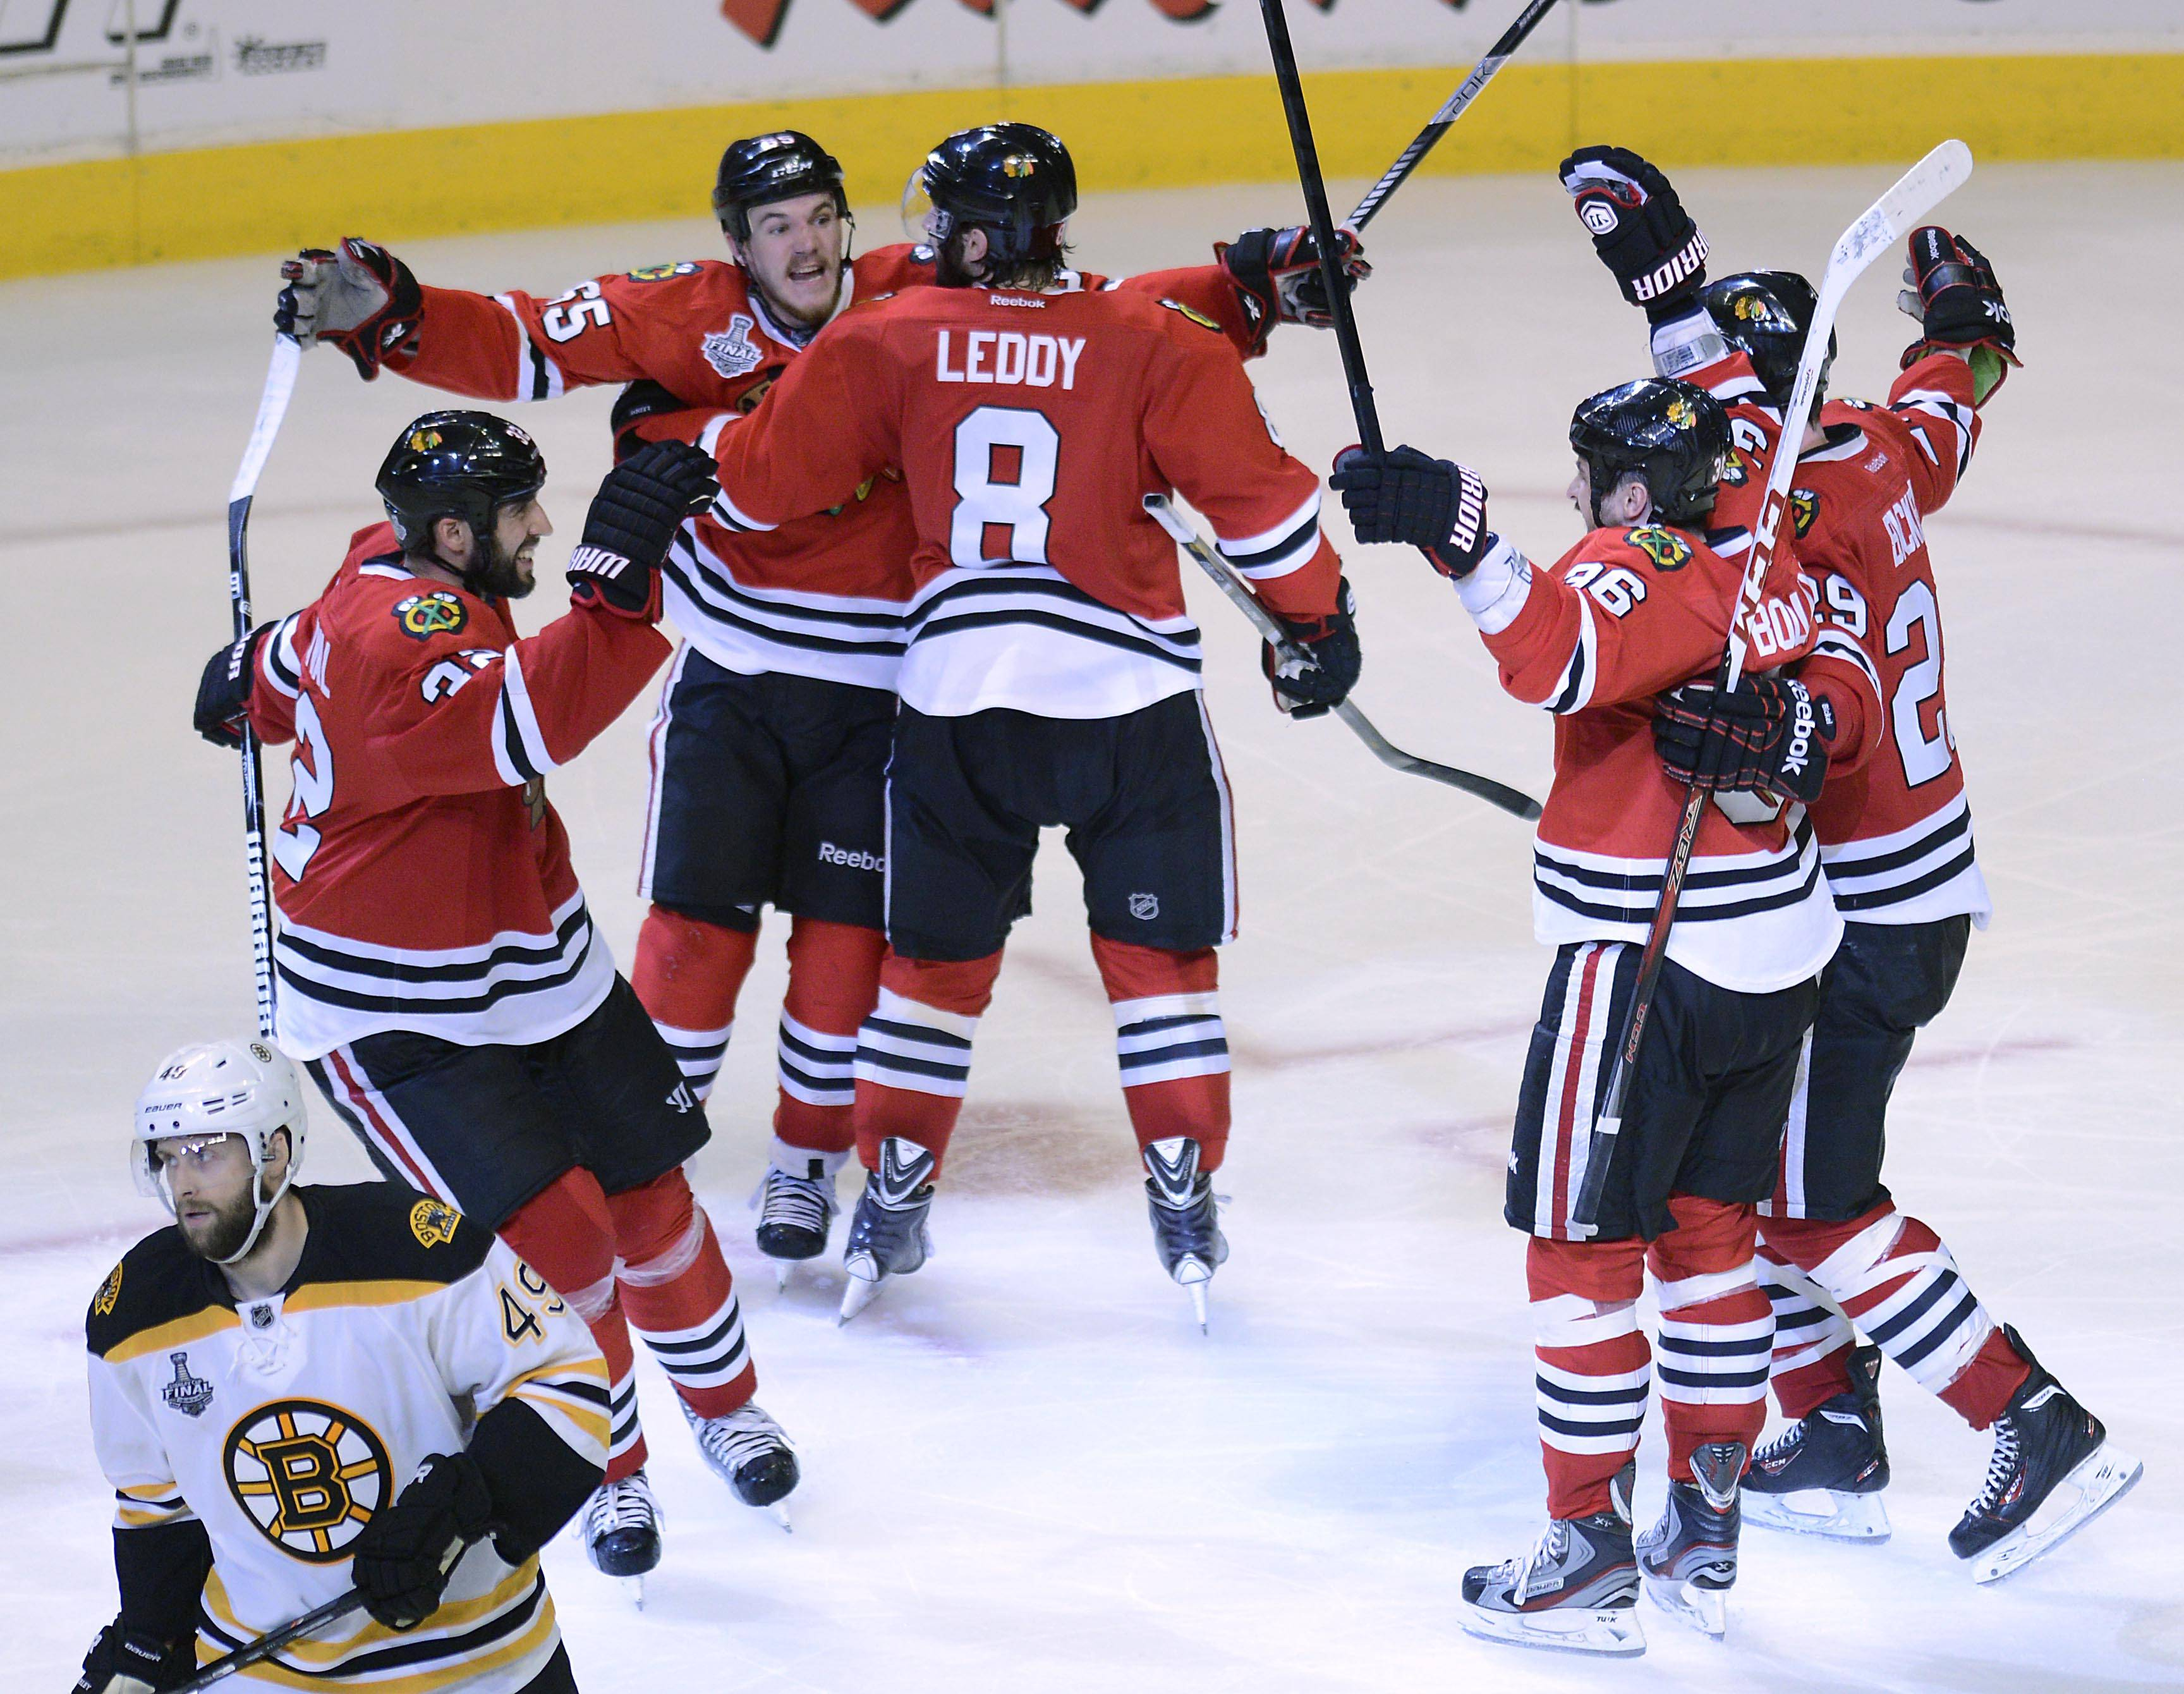 Chicago Blackhawks center Andrew Shaw is surrounded by teammates after his game-winning goal in the third overtime against the Boston Bruins during Game 1 of the Stanley Cup Finals Wednesday at the Untied Center in Chicago.